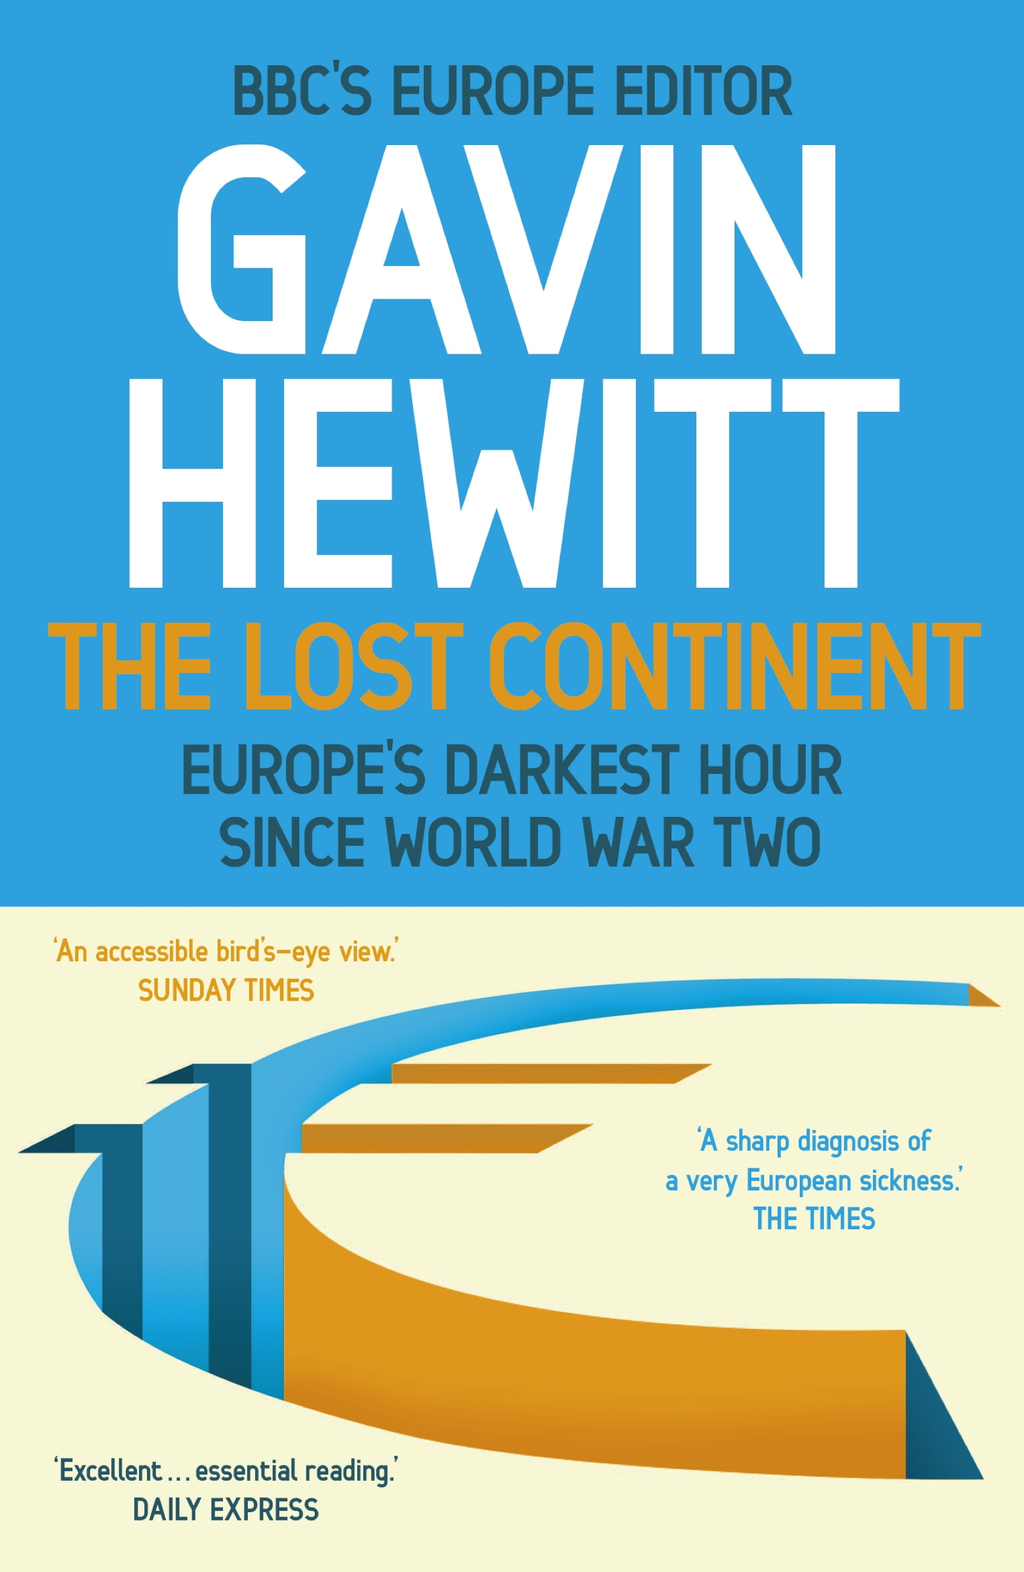 The Lost Continent The BBC's Europe Editor on Europe's Darkest Hour Since World War Two